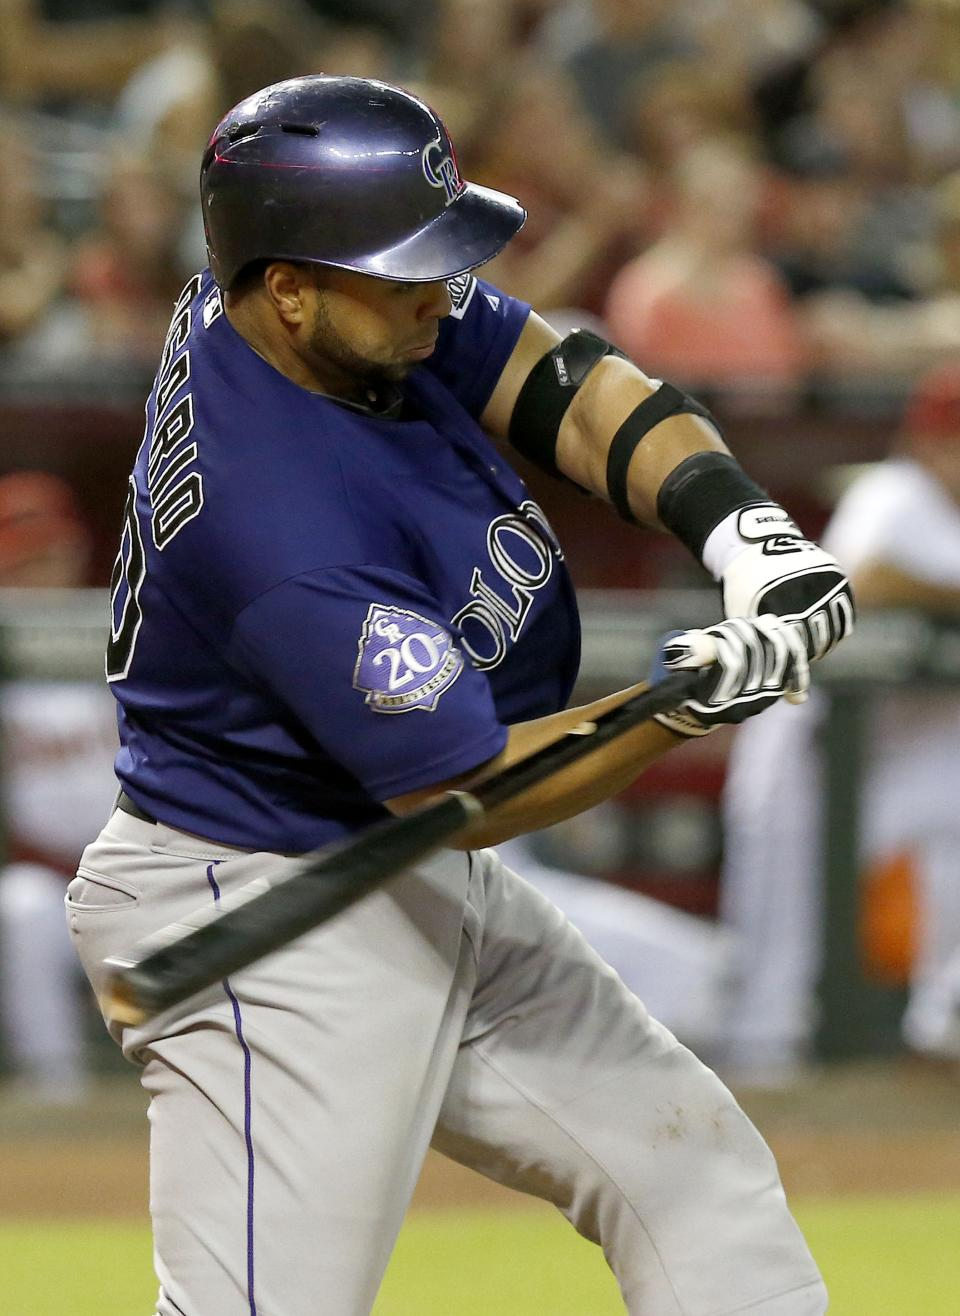 Dickerson hits trick-shot double, Rox top Dbacks